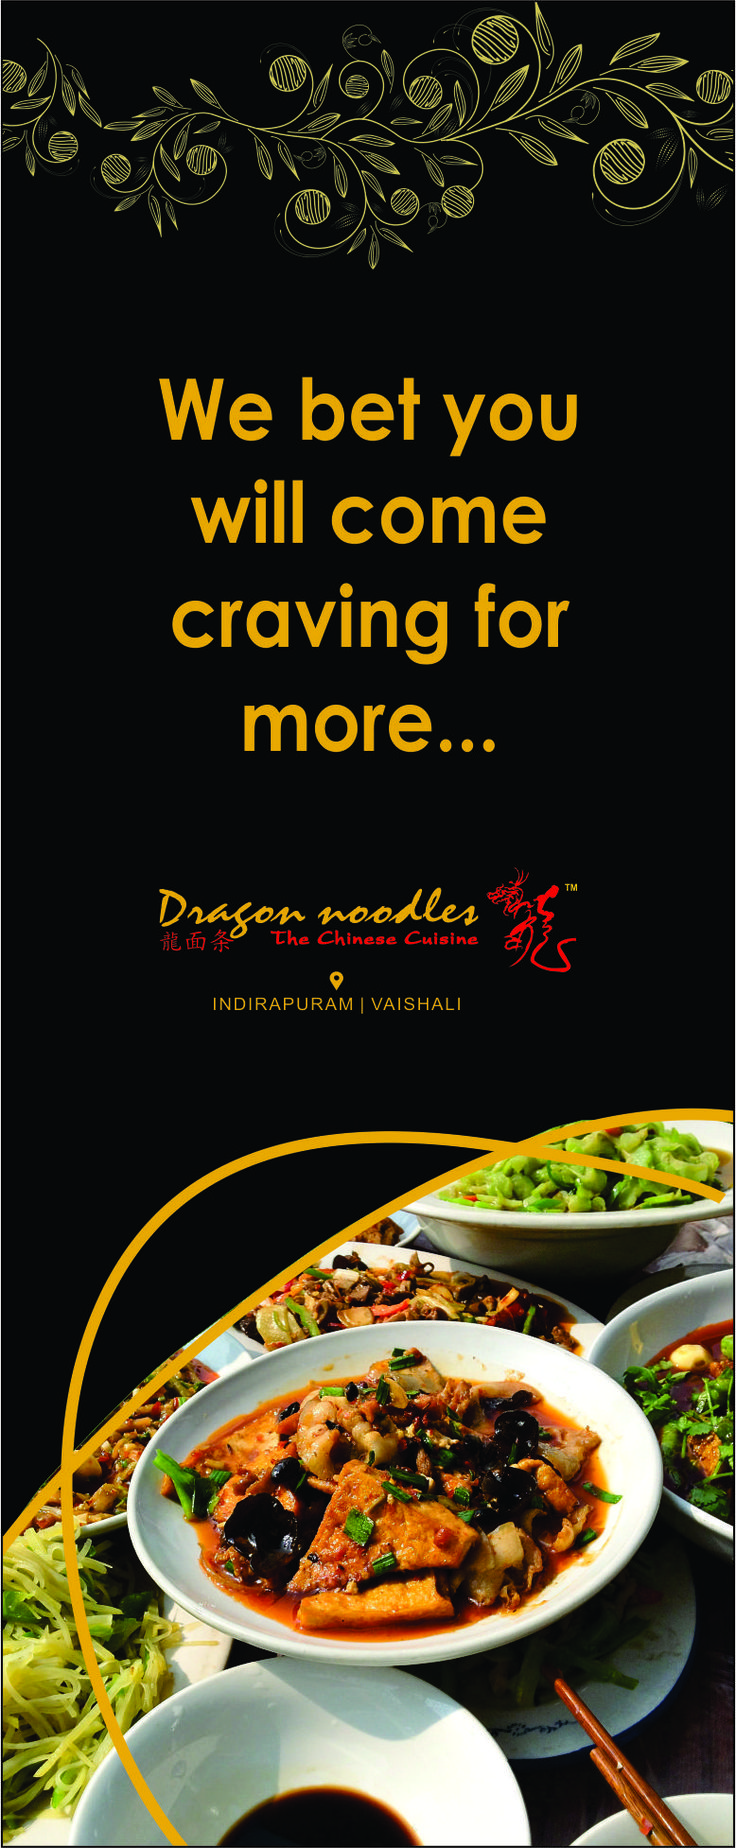 We make your dining experience worthwhile through a blend of tasteful food, good ambience and flawless service. #DragonNoodles #Chinese #Food #Ghaziabad #foodies